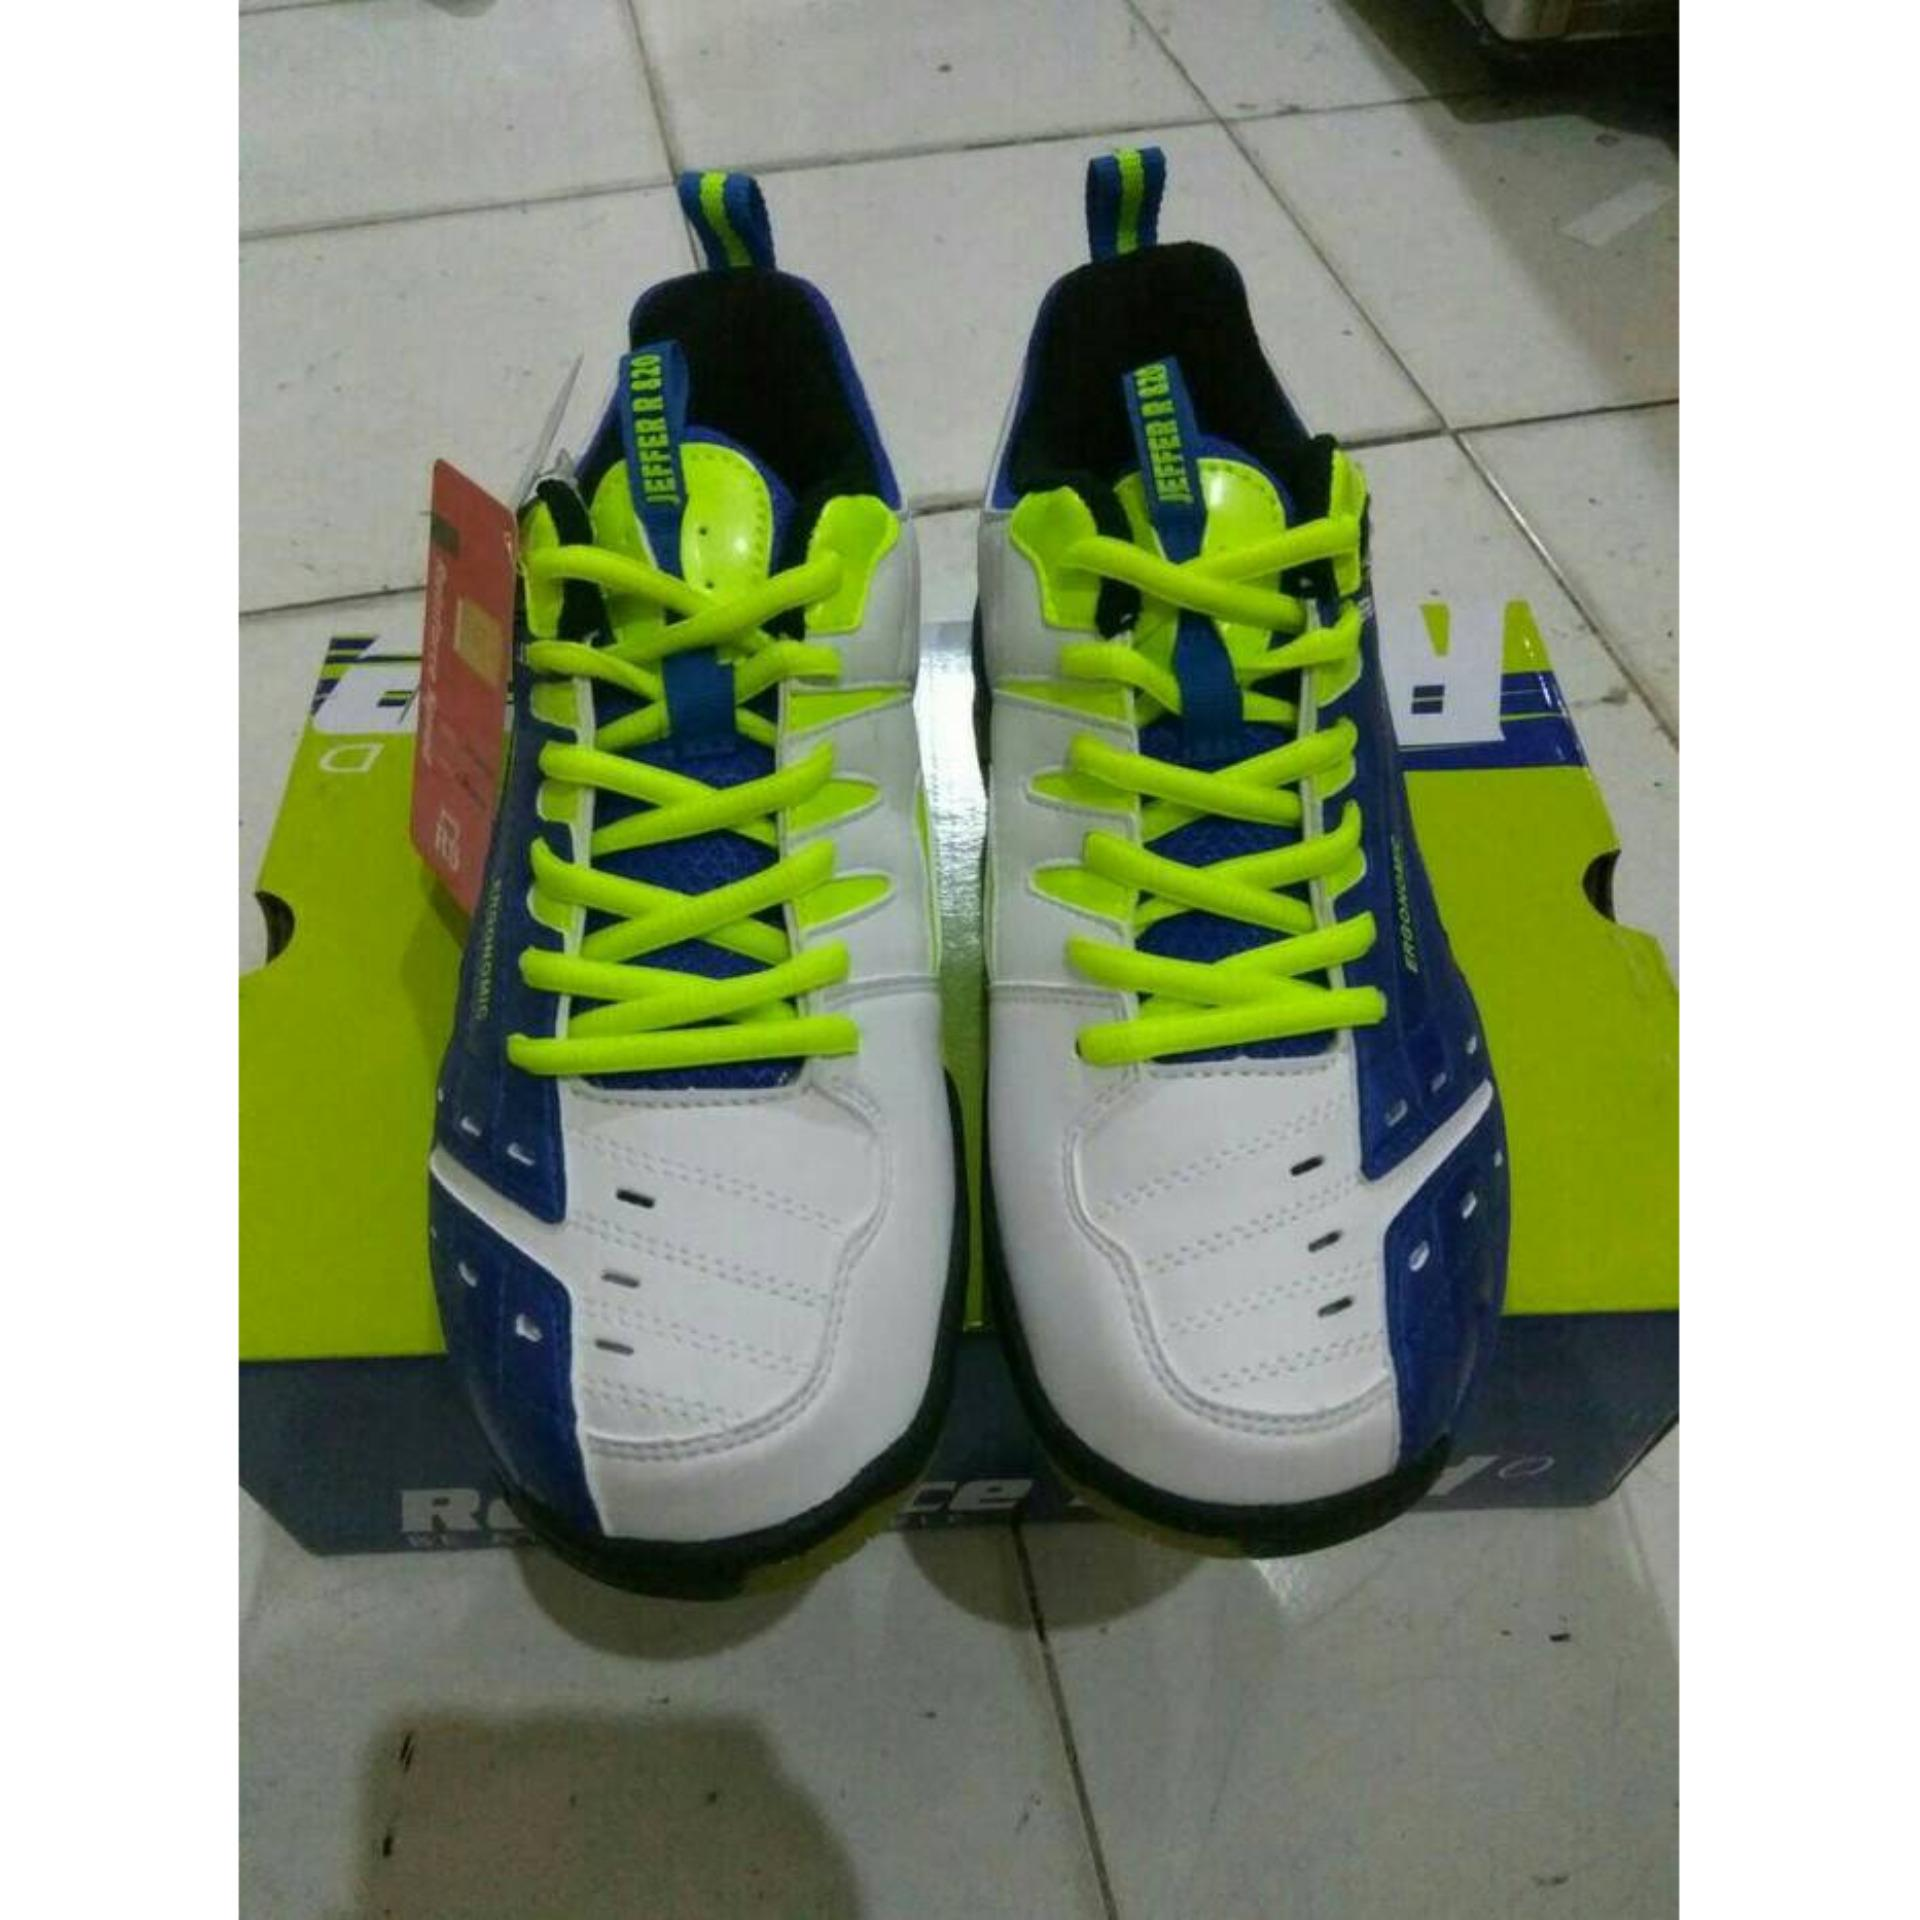 Kelebihan Sepatu Badminton Rs Jf R 853 Jeffer Original 8yugvp Skmei Jam Tangan Digital Dg1219 Black Green Sj0049 820 Blue White